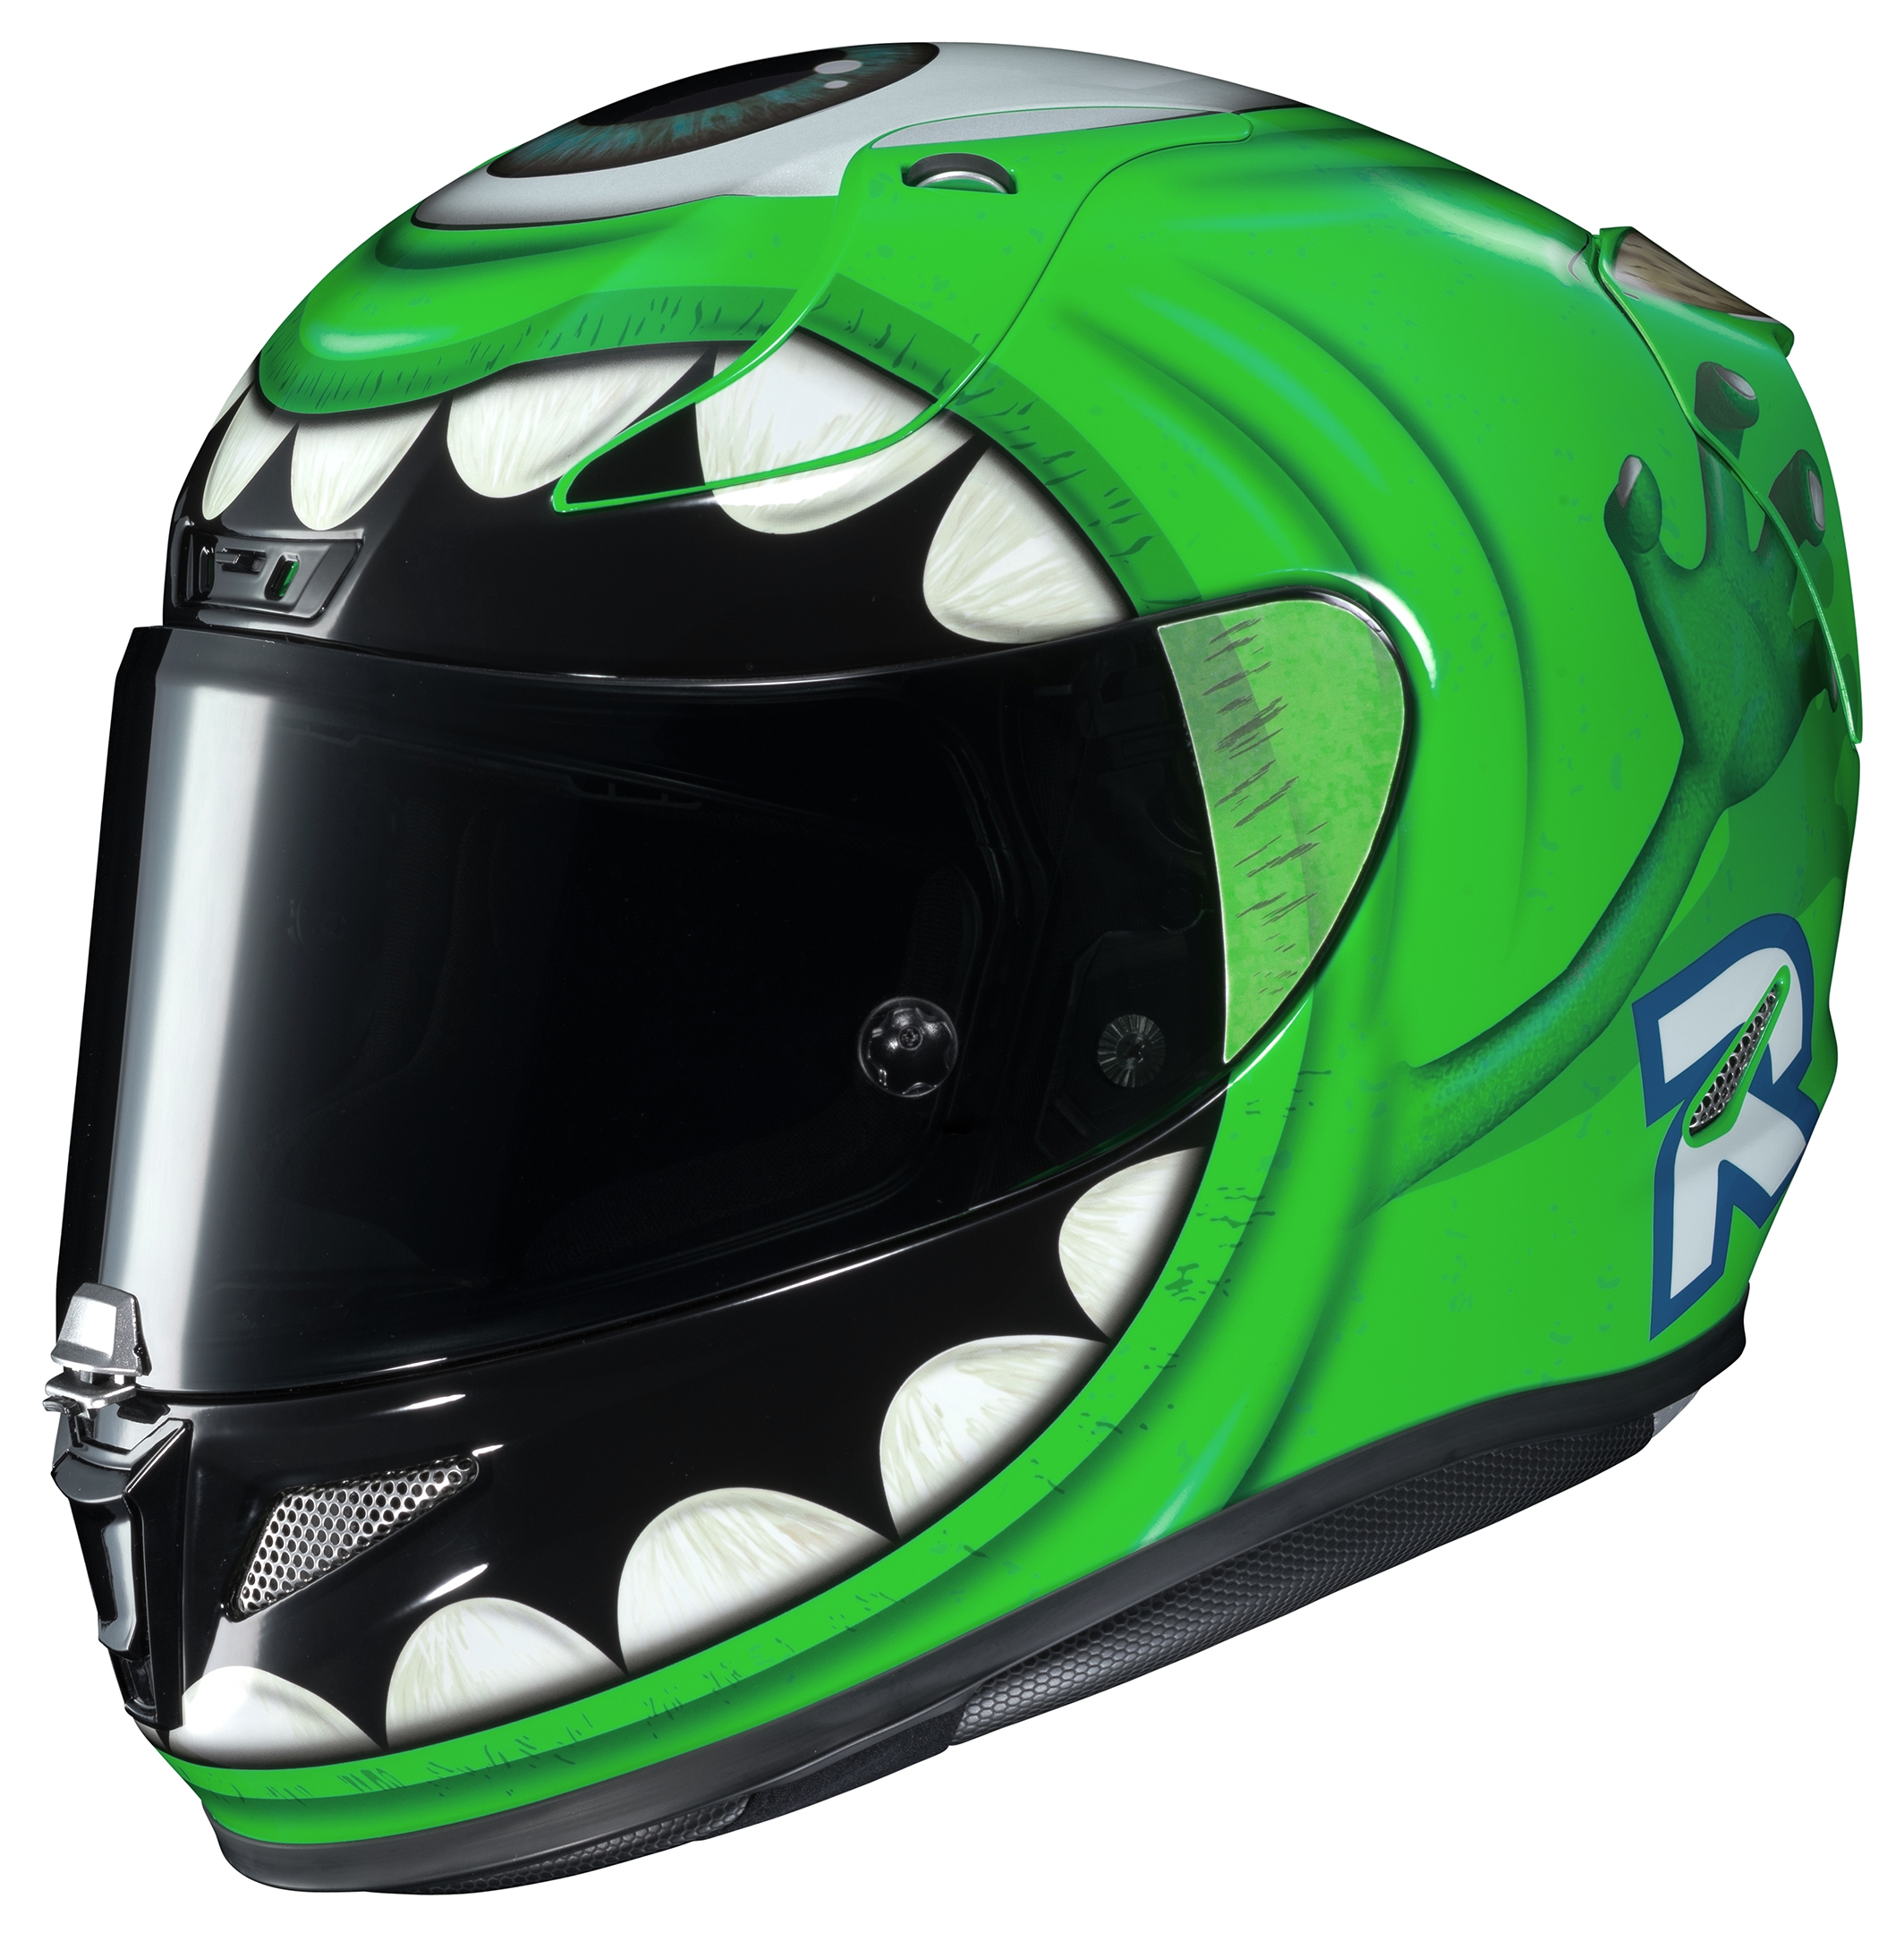 hjc rpha 11 pro mike wazowski helmet 10 off revzilla. Black Bedroom Furniture Sets. Home Design Ideas